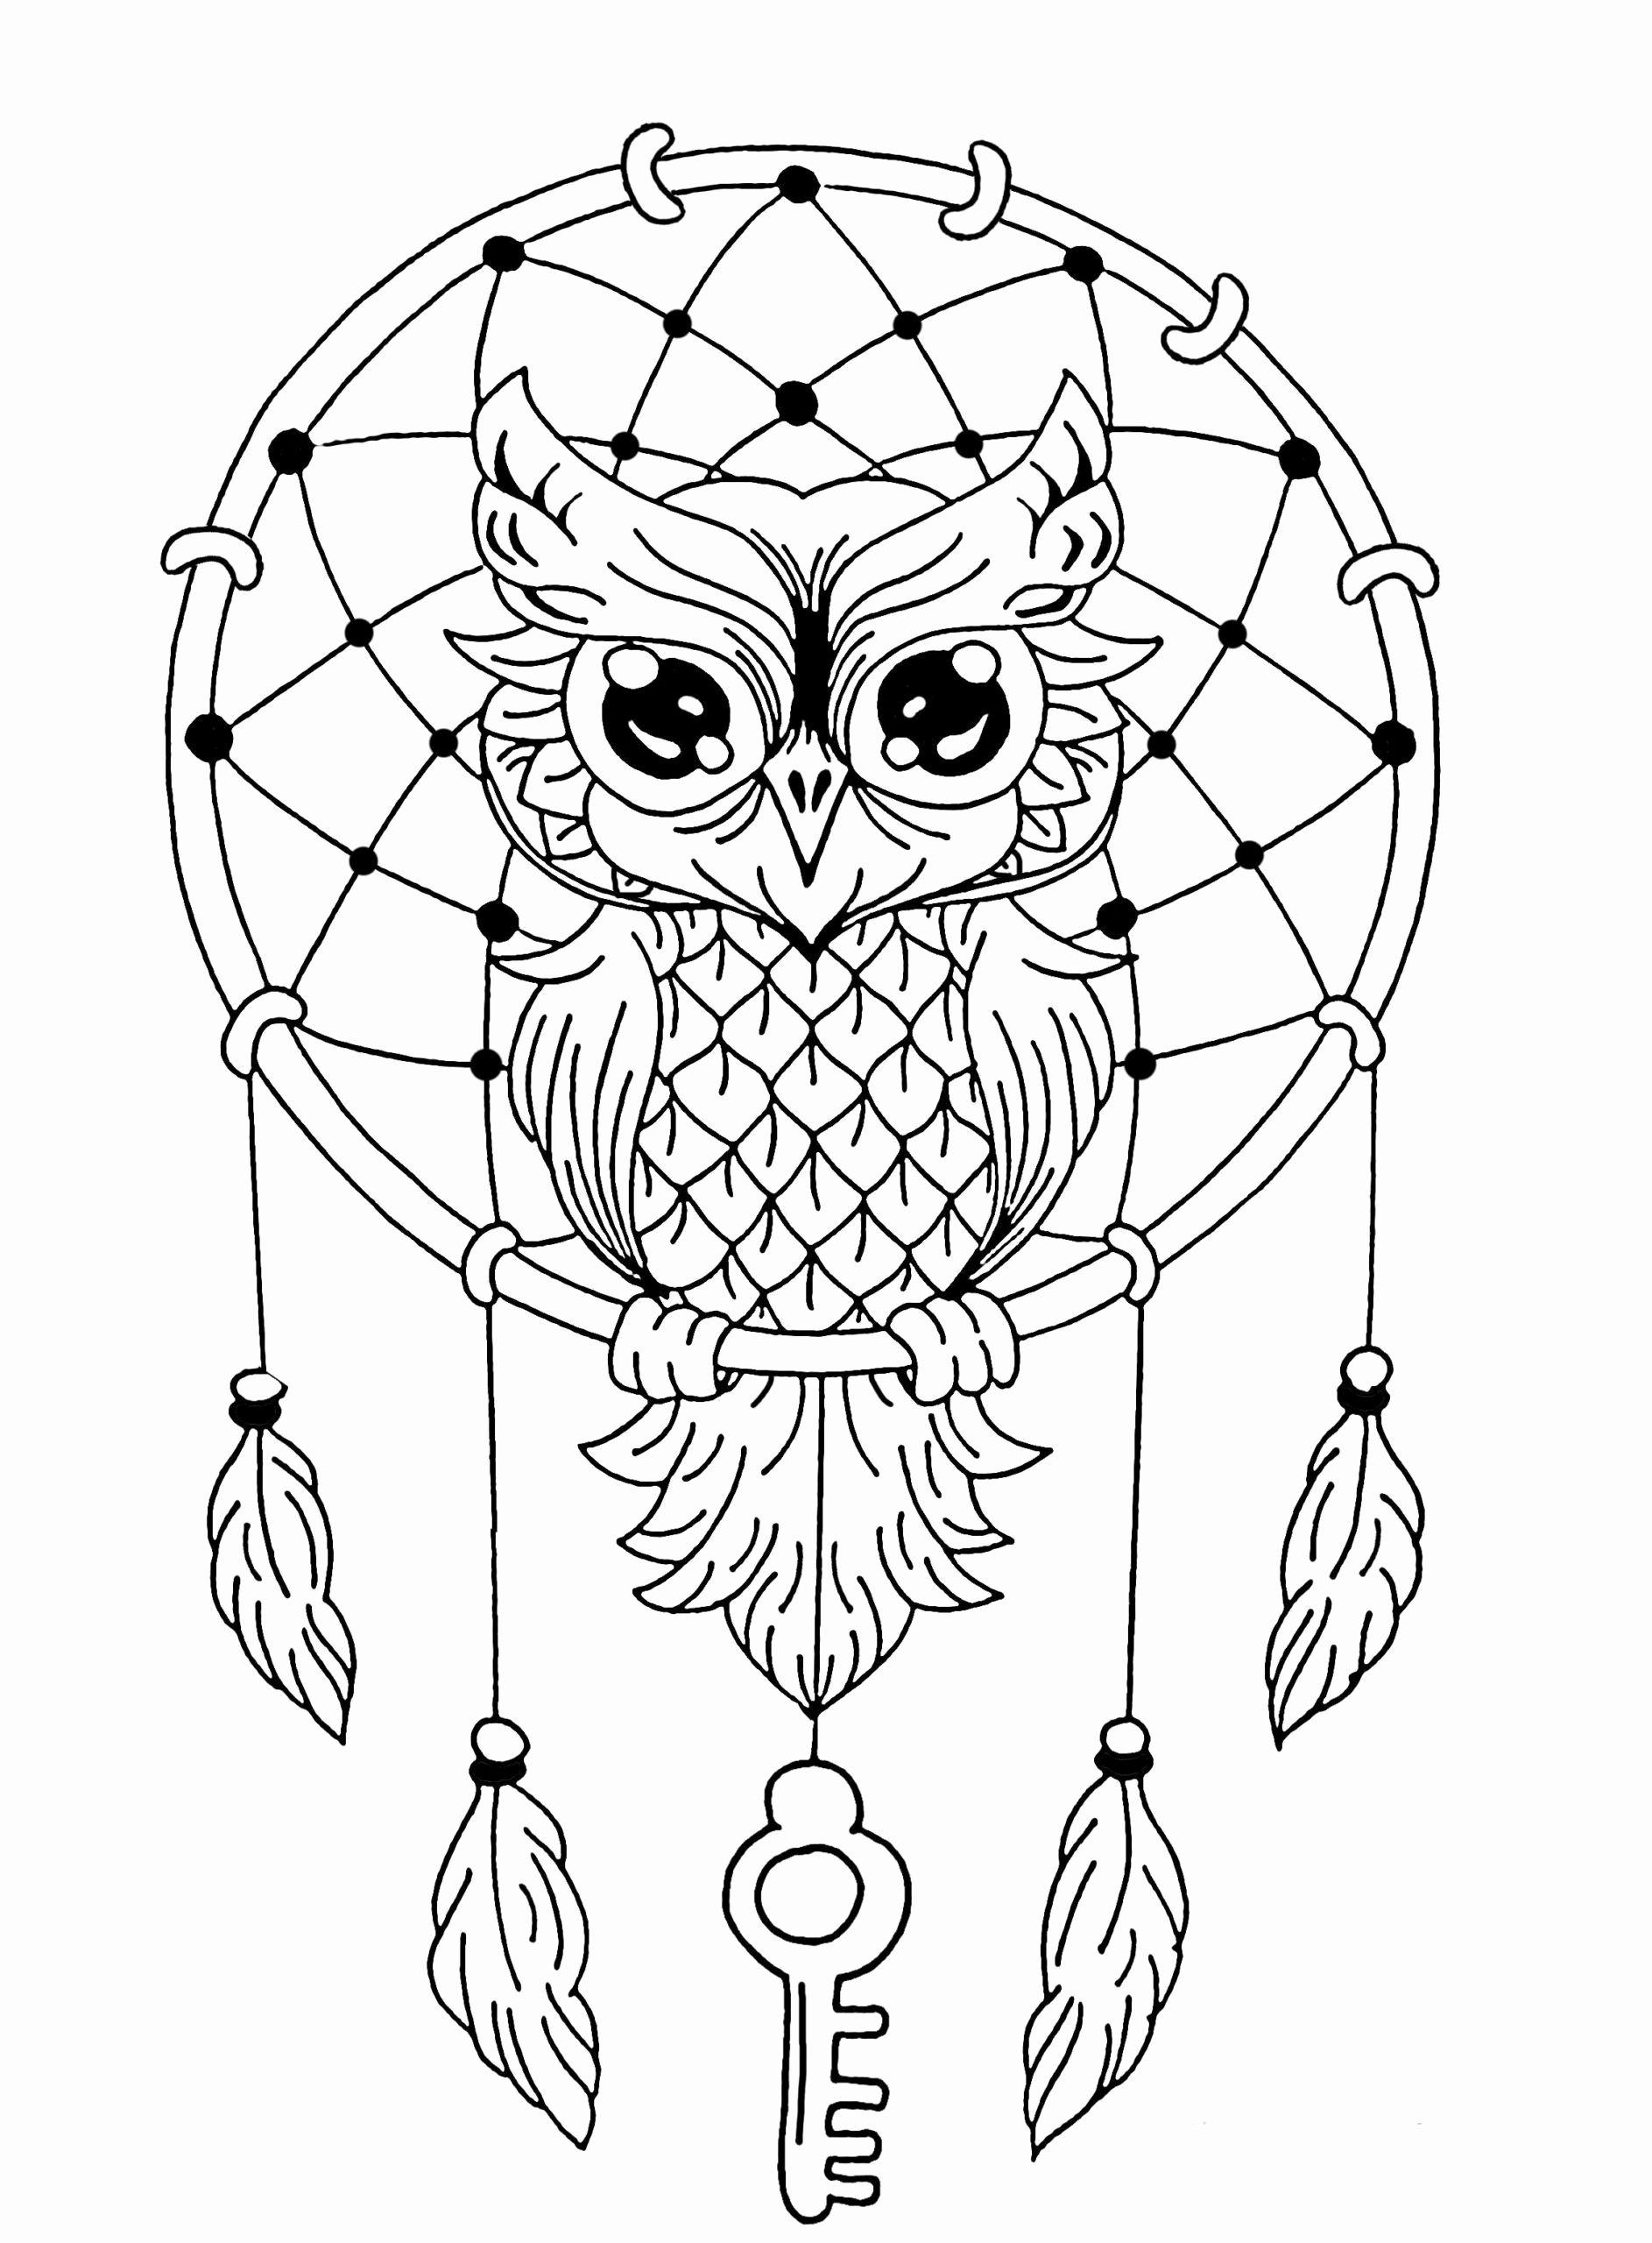 Kids Hard Animal Coloring Pages Owl Coloring Pages Cute Coloring Pages Animal Coloring Pages